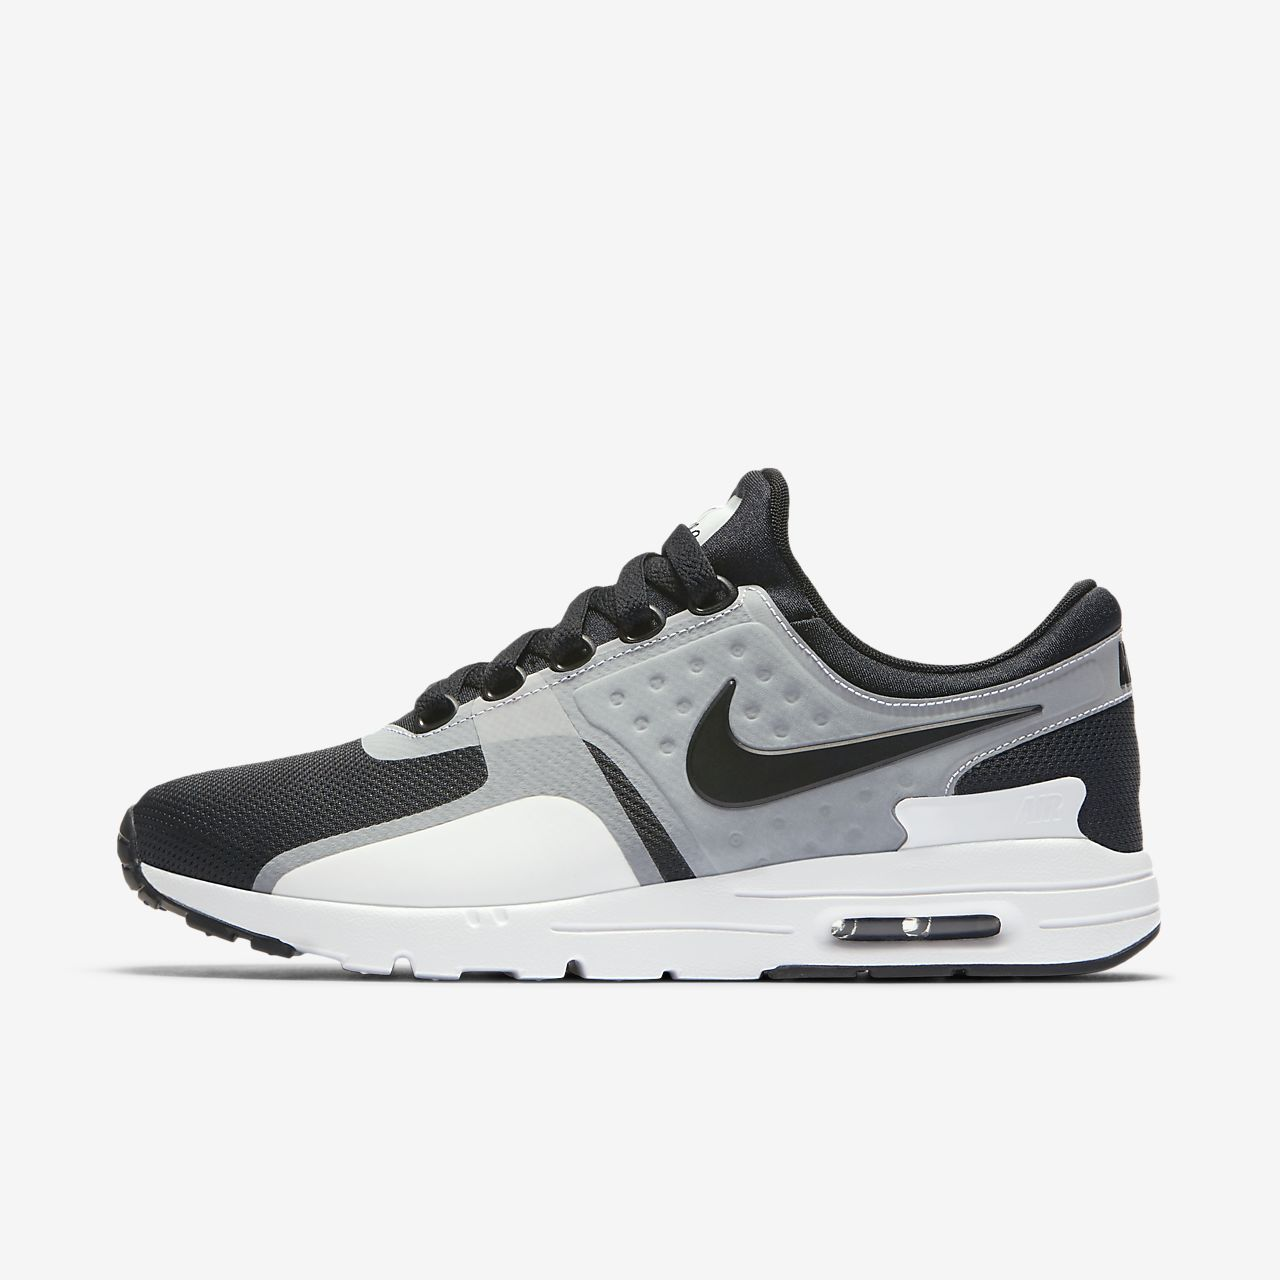 info for 2f948 beb59 Nike Air Max Zero : Nike Sneakers Online at Best Prices ...